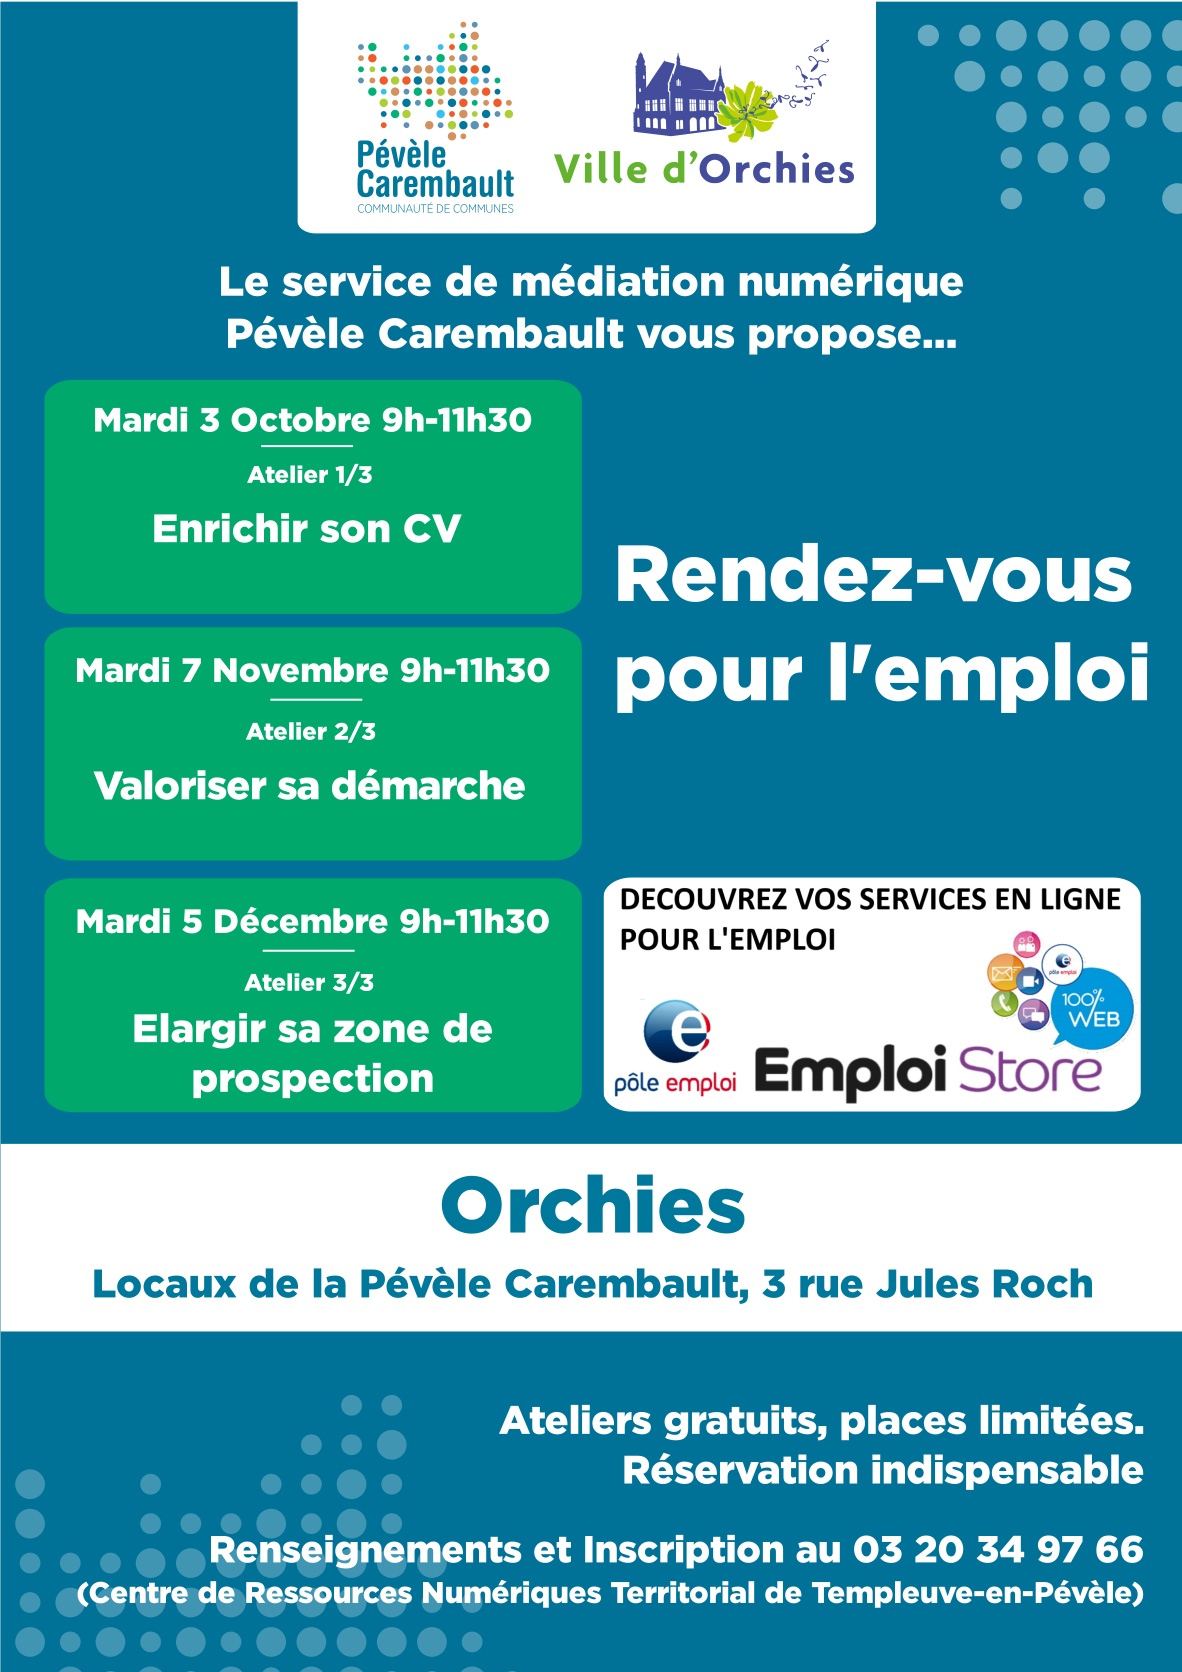 Emploi Orchies